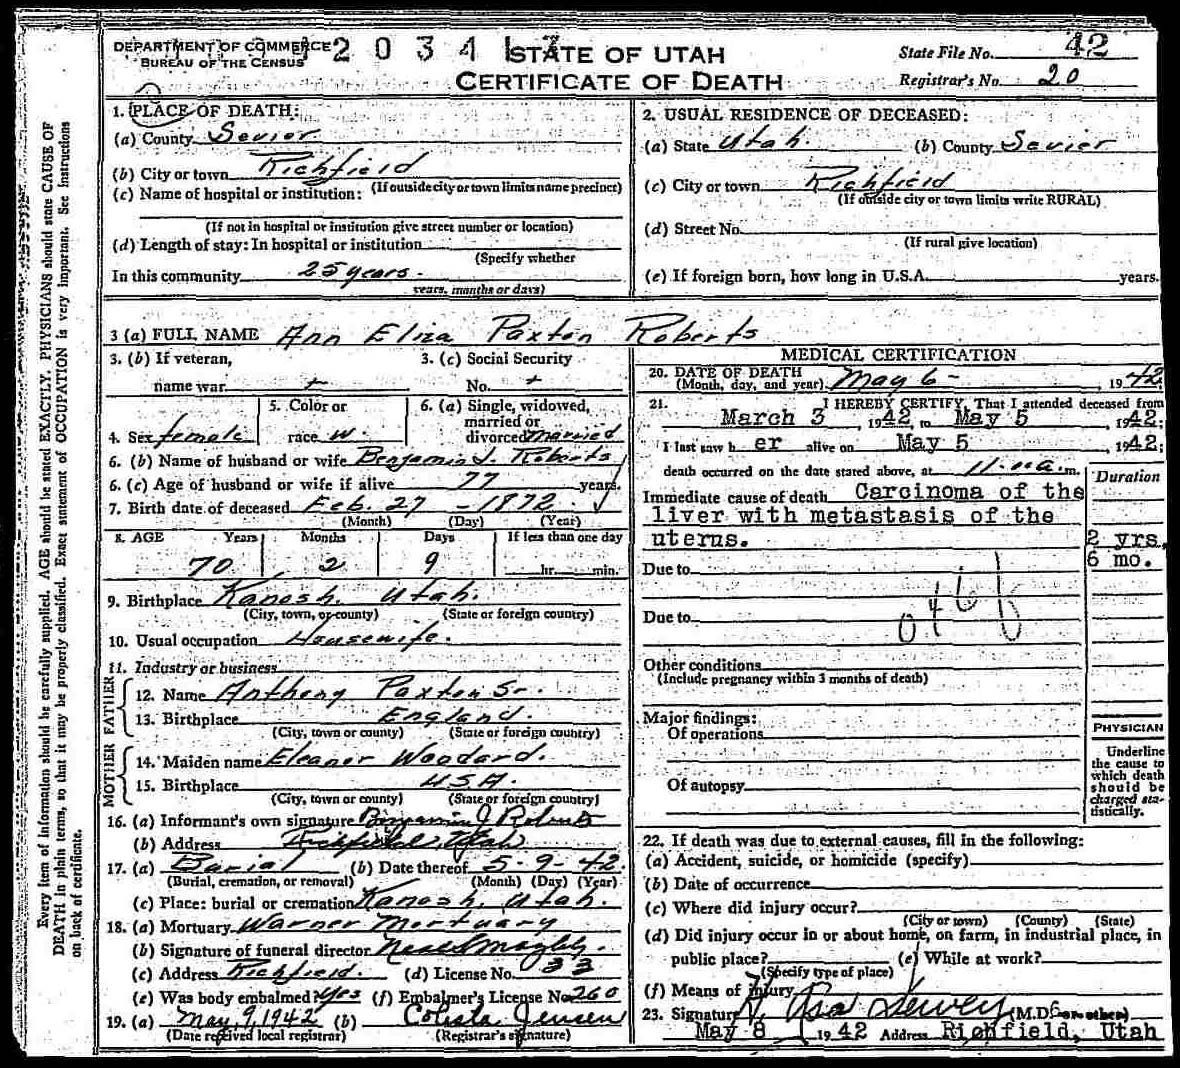 Documents Ann Eliza Paxton 1972 1942 Death Certificate The